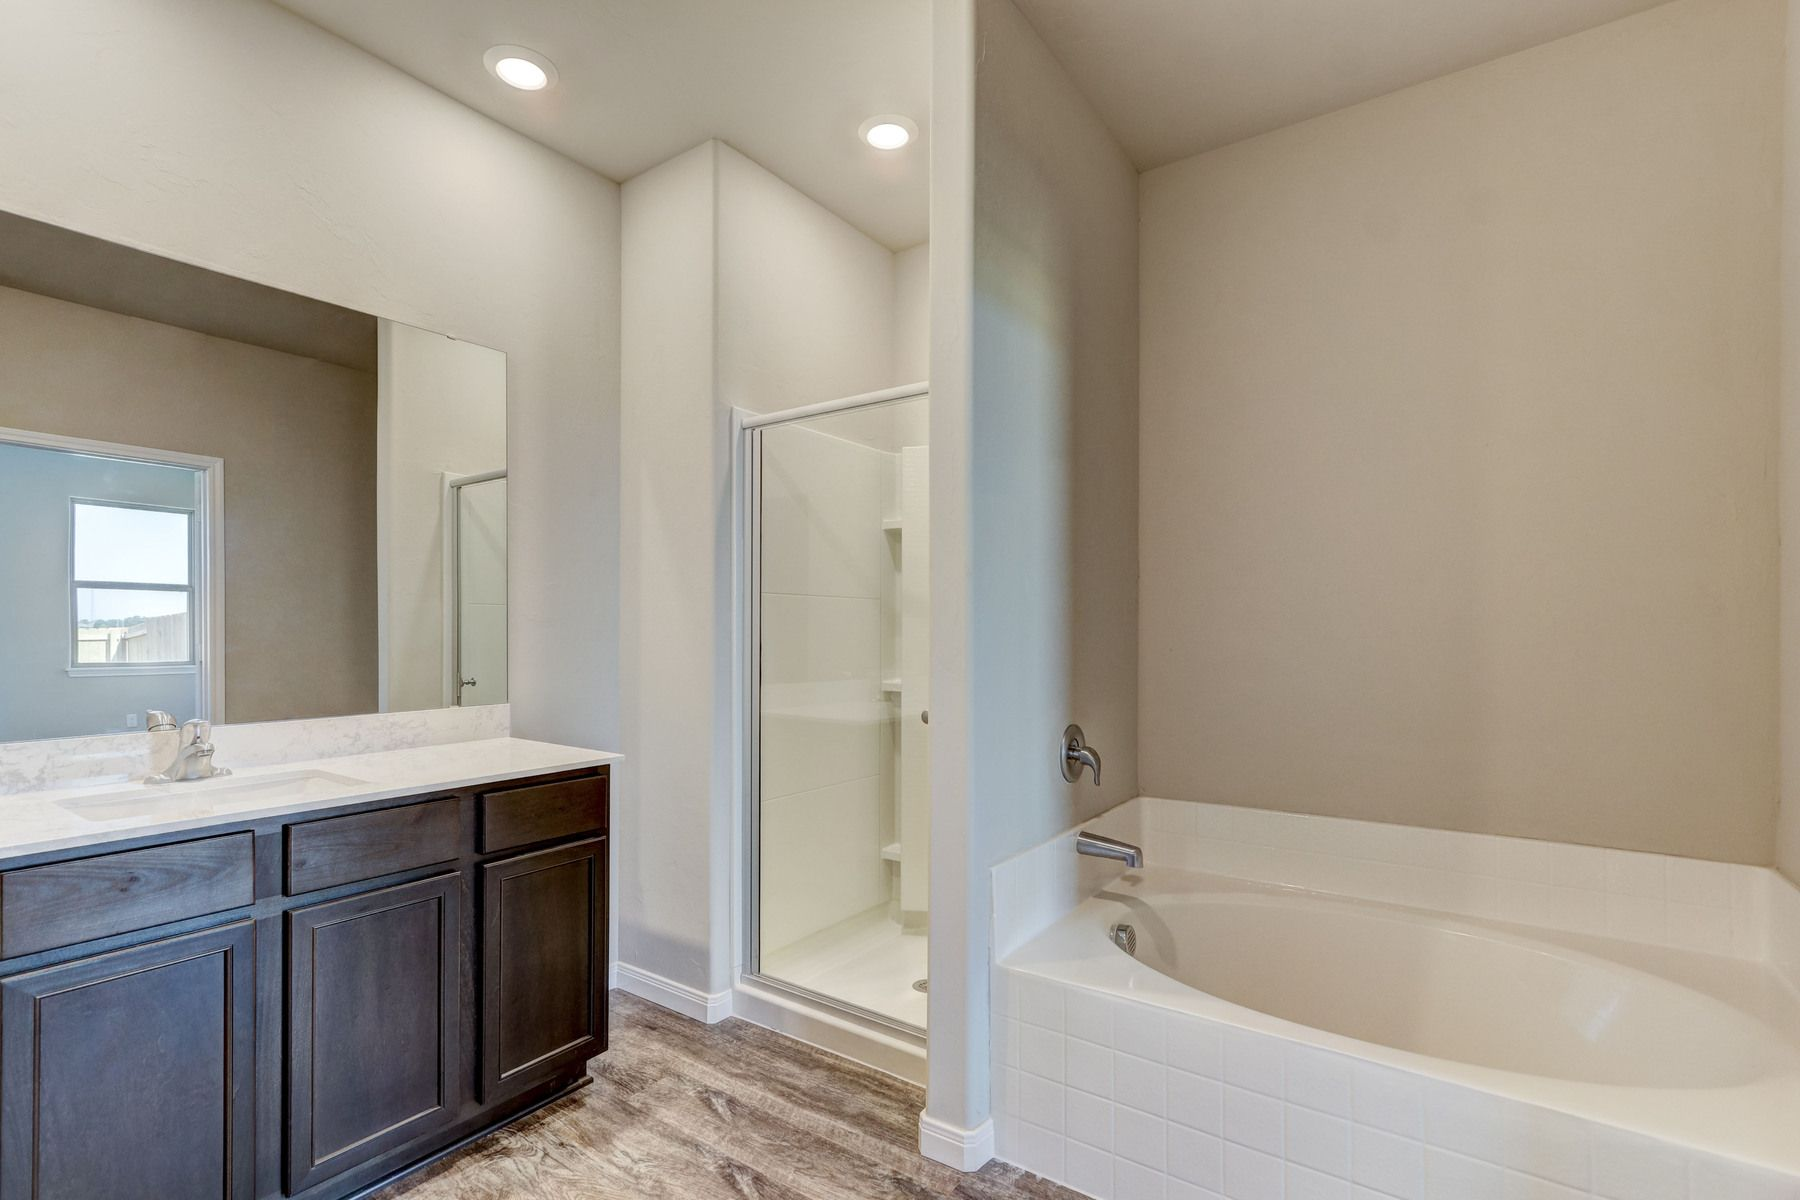 Bathroom featured in the Keaton By LGI Homes in Oklahoma City, OK